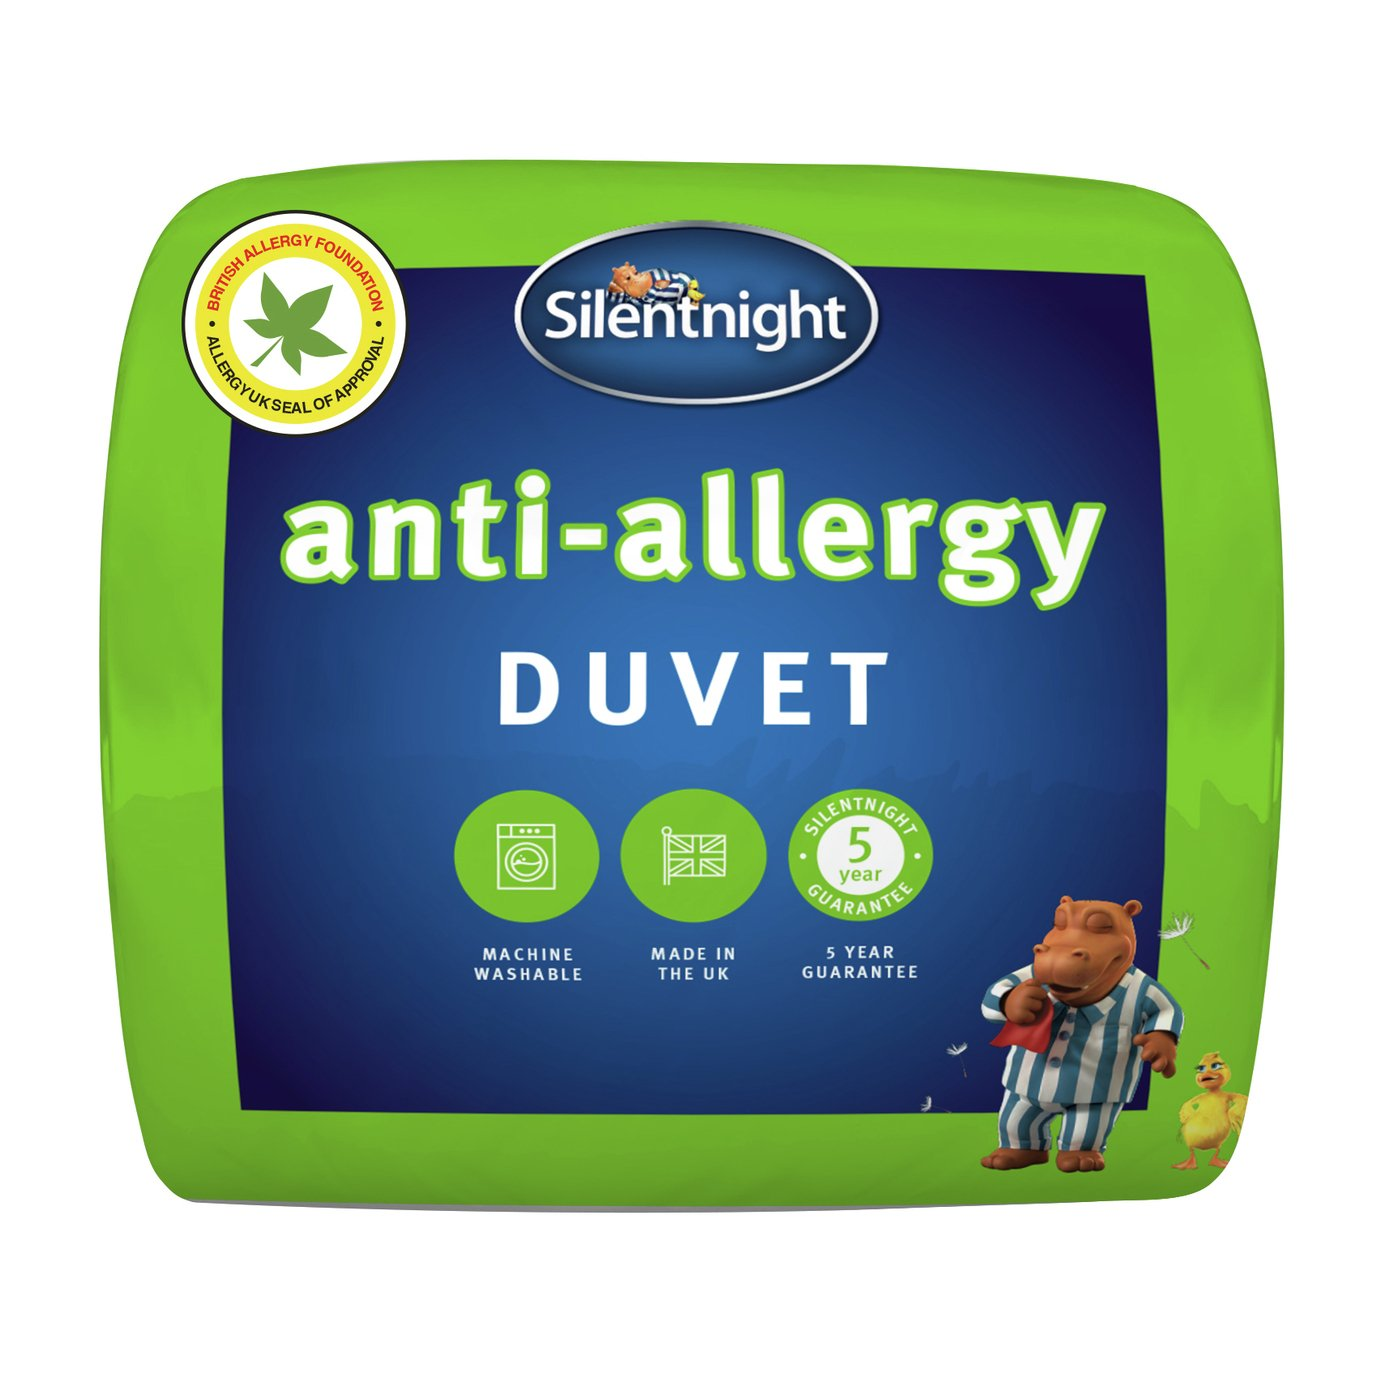 Silentnight Anti-Allergy 10.5 Tog Duvet - Single